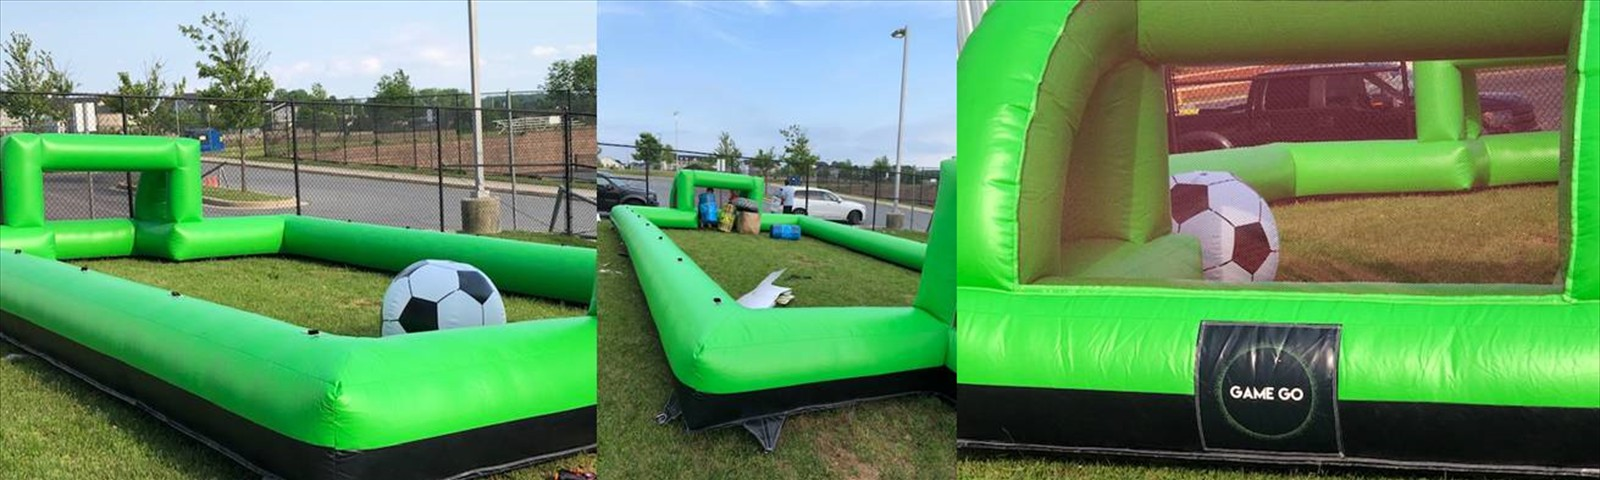 game-go-inflatable-arena-group